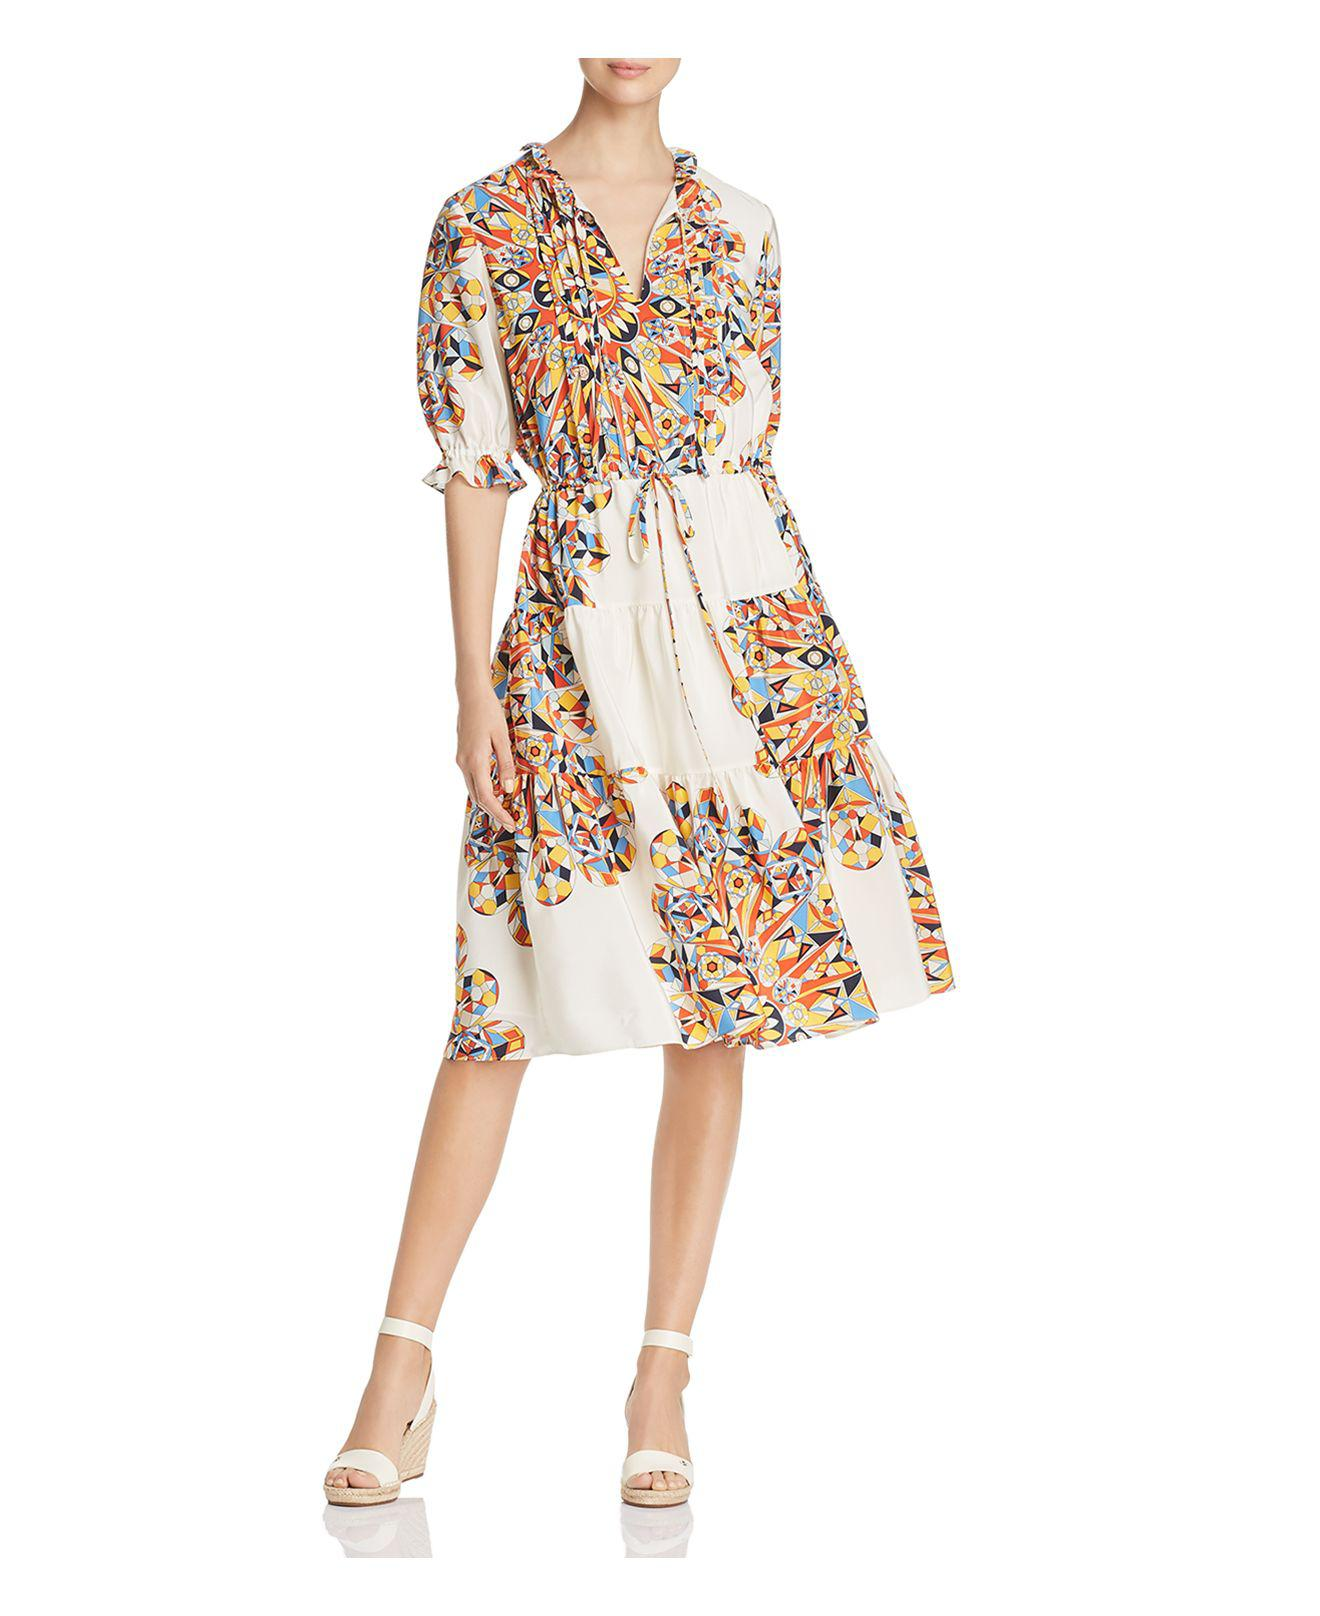 Tory Burch. Women's Arabella Printed Silk Ruffle Dress